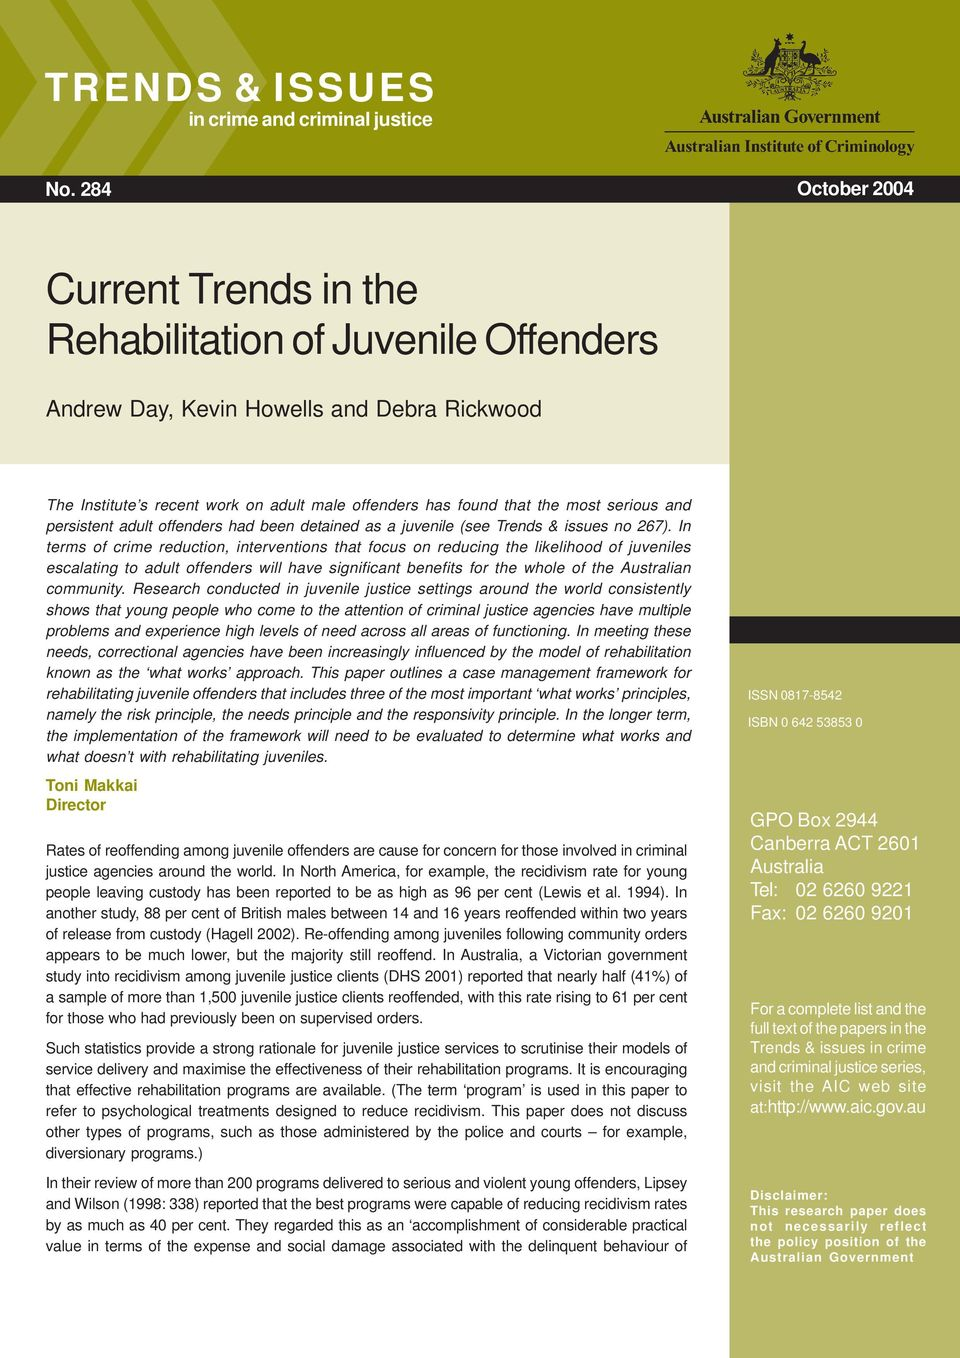 an overview of the issues regarding juvenile offenders and juvenile justice